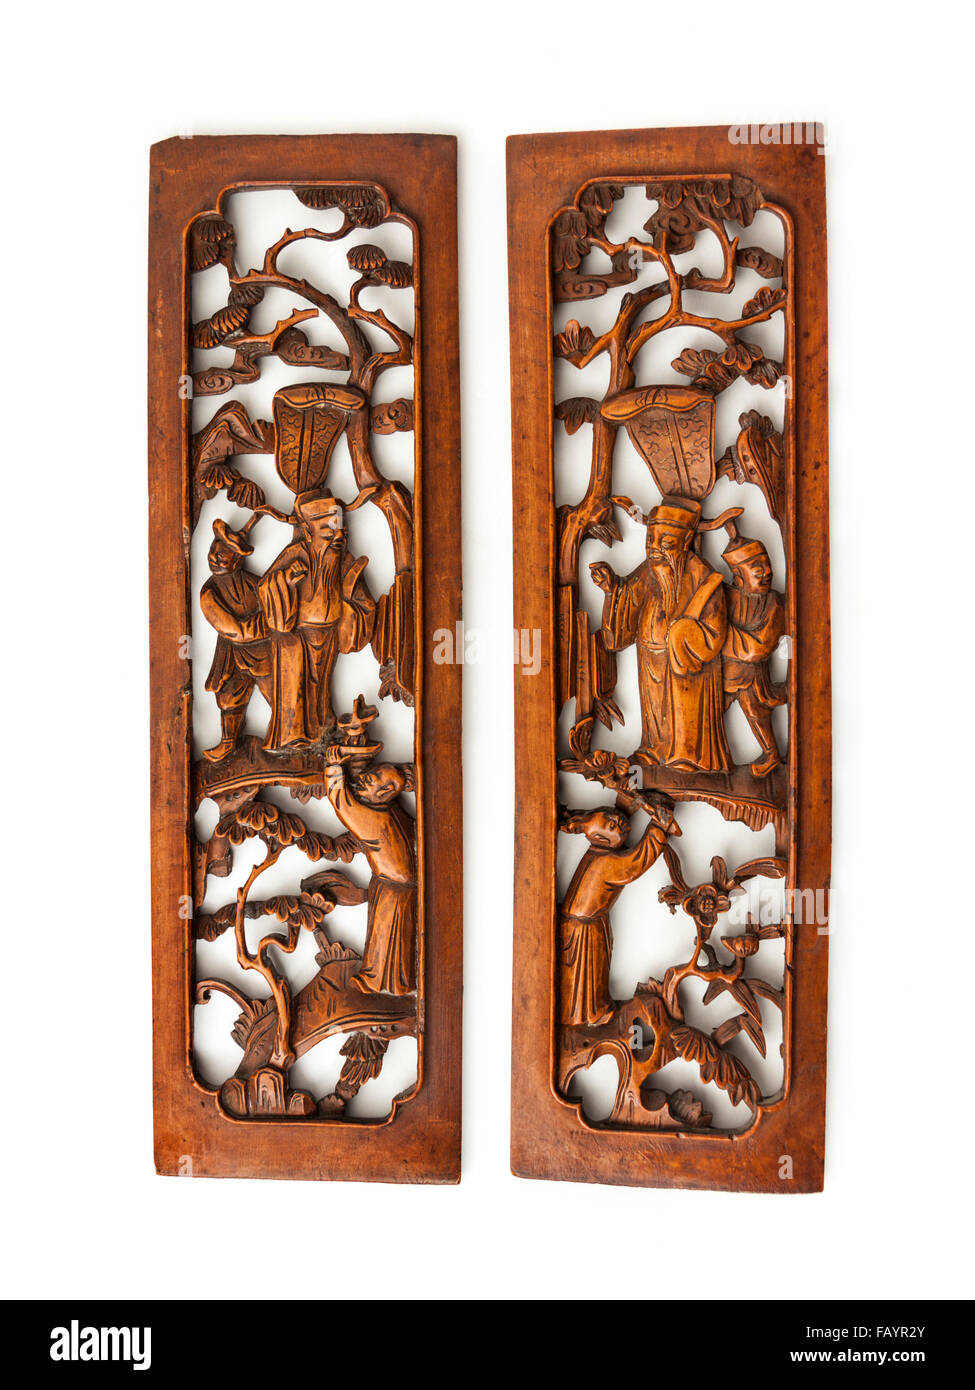 Pair of antique 19th century Japanese or Chinese finely carved wooden wall panels - Stock Image